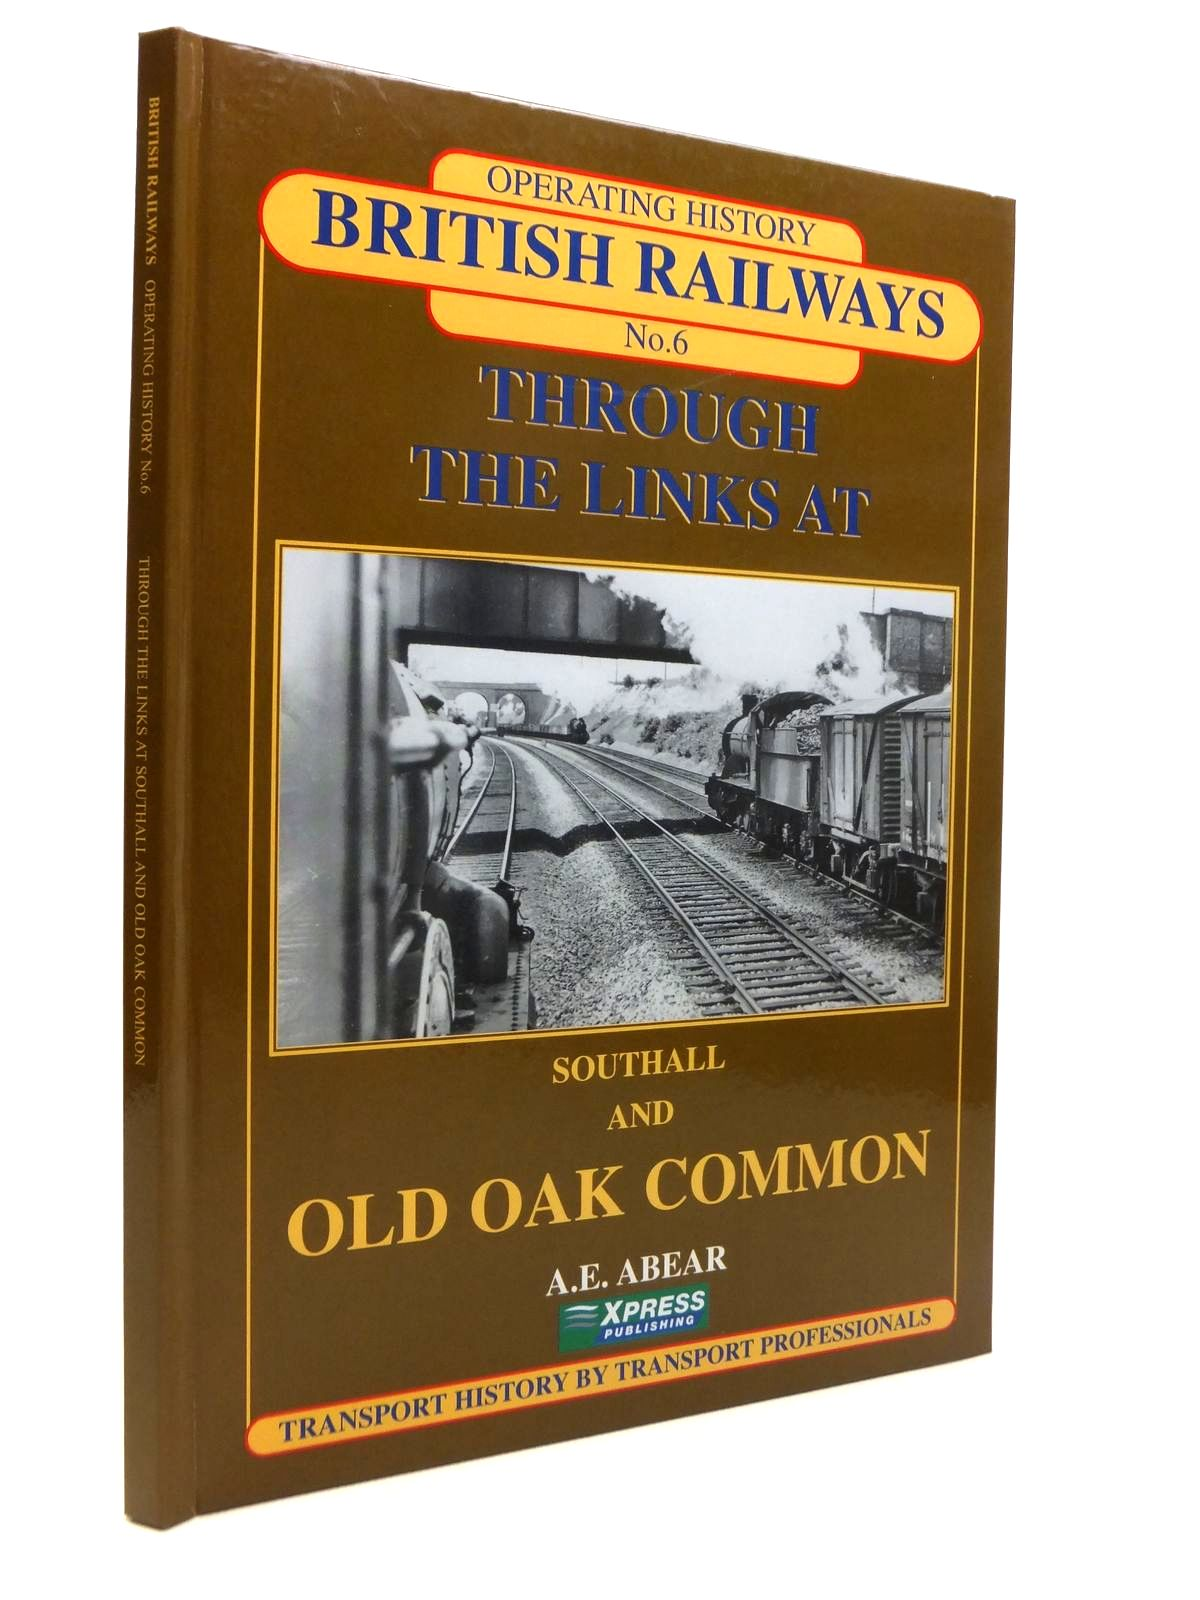 Photo of BRITISH RAILWAYS OPERATING HISTORY No. 6 THROUGH THE LINKS AT SOUTHALL AND OLD OAK COMMON written by Abear, A.E. published by Xpress Publising (STOCK CODE: 1812220)  for sale by Stella & Rose's Books